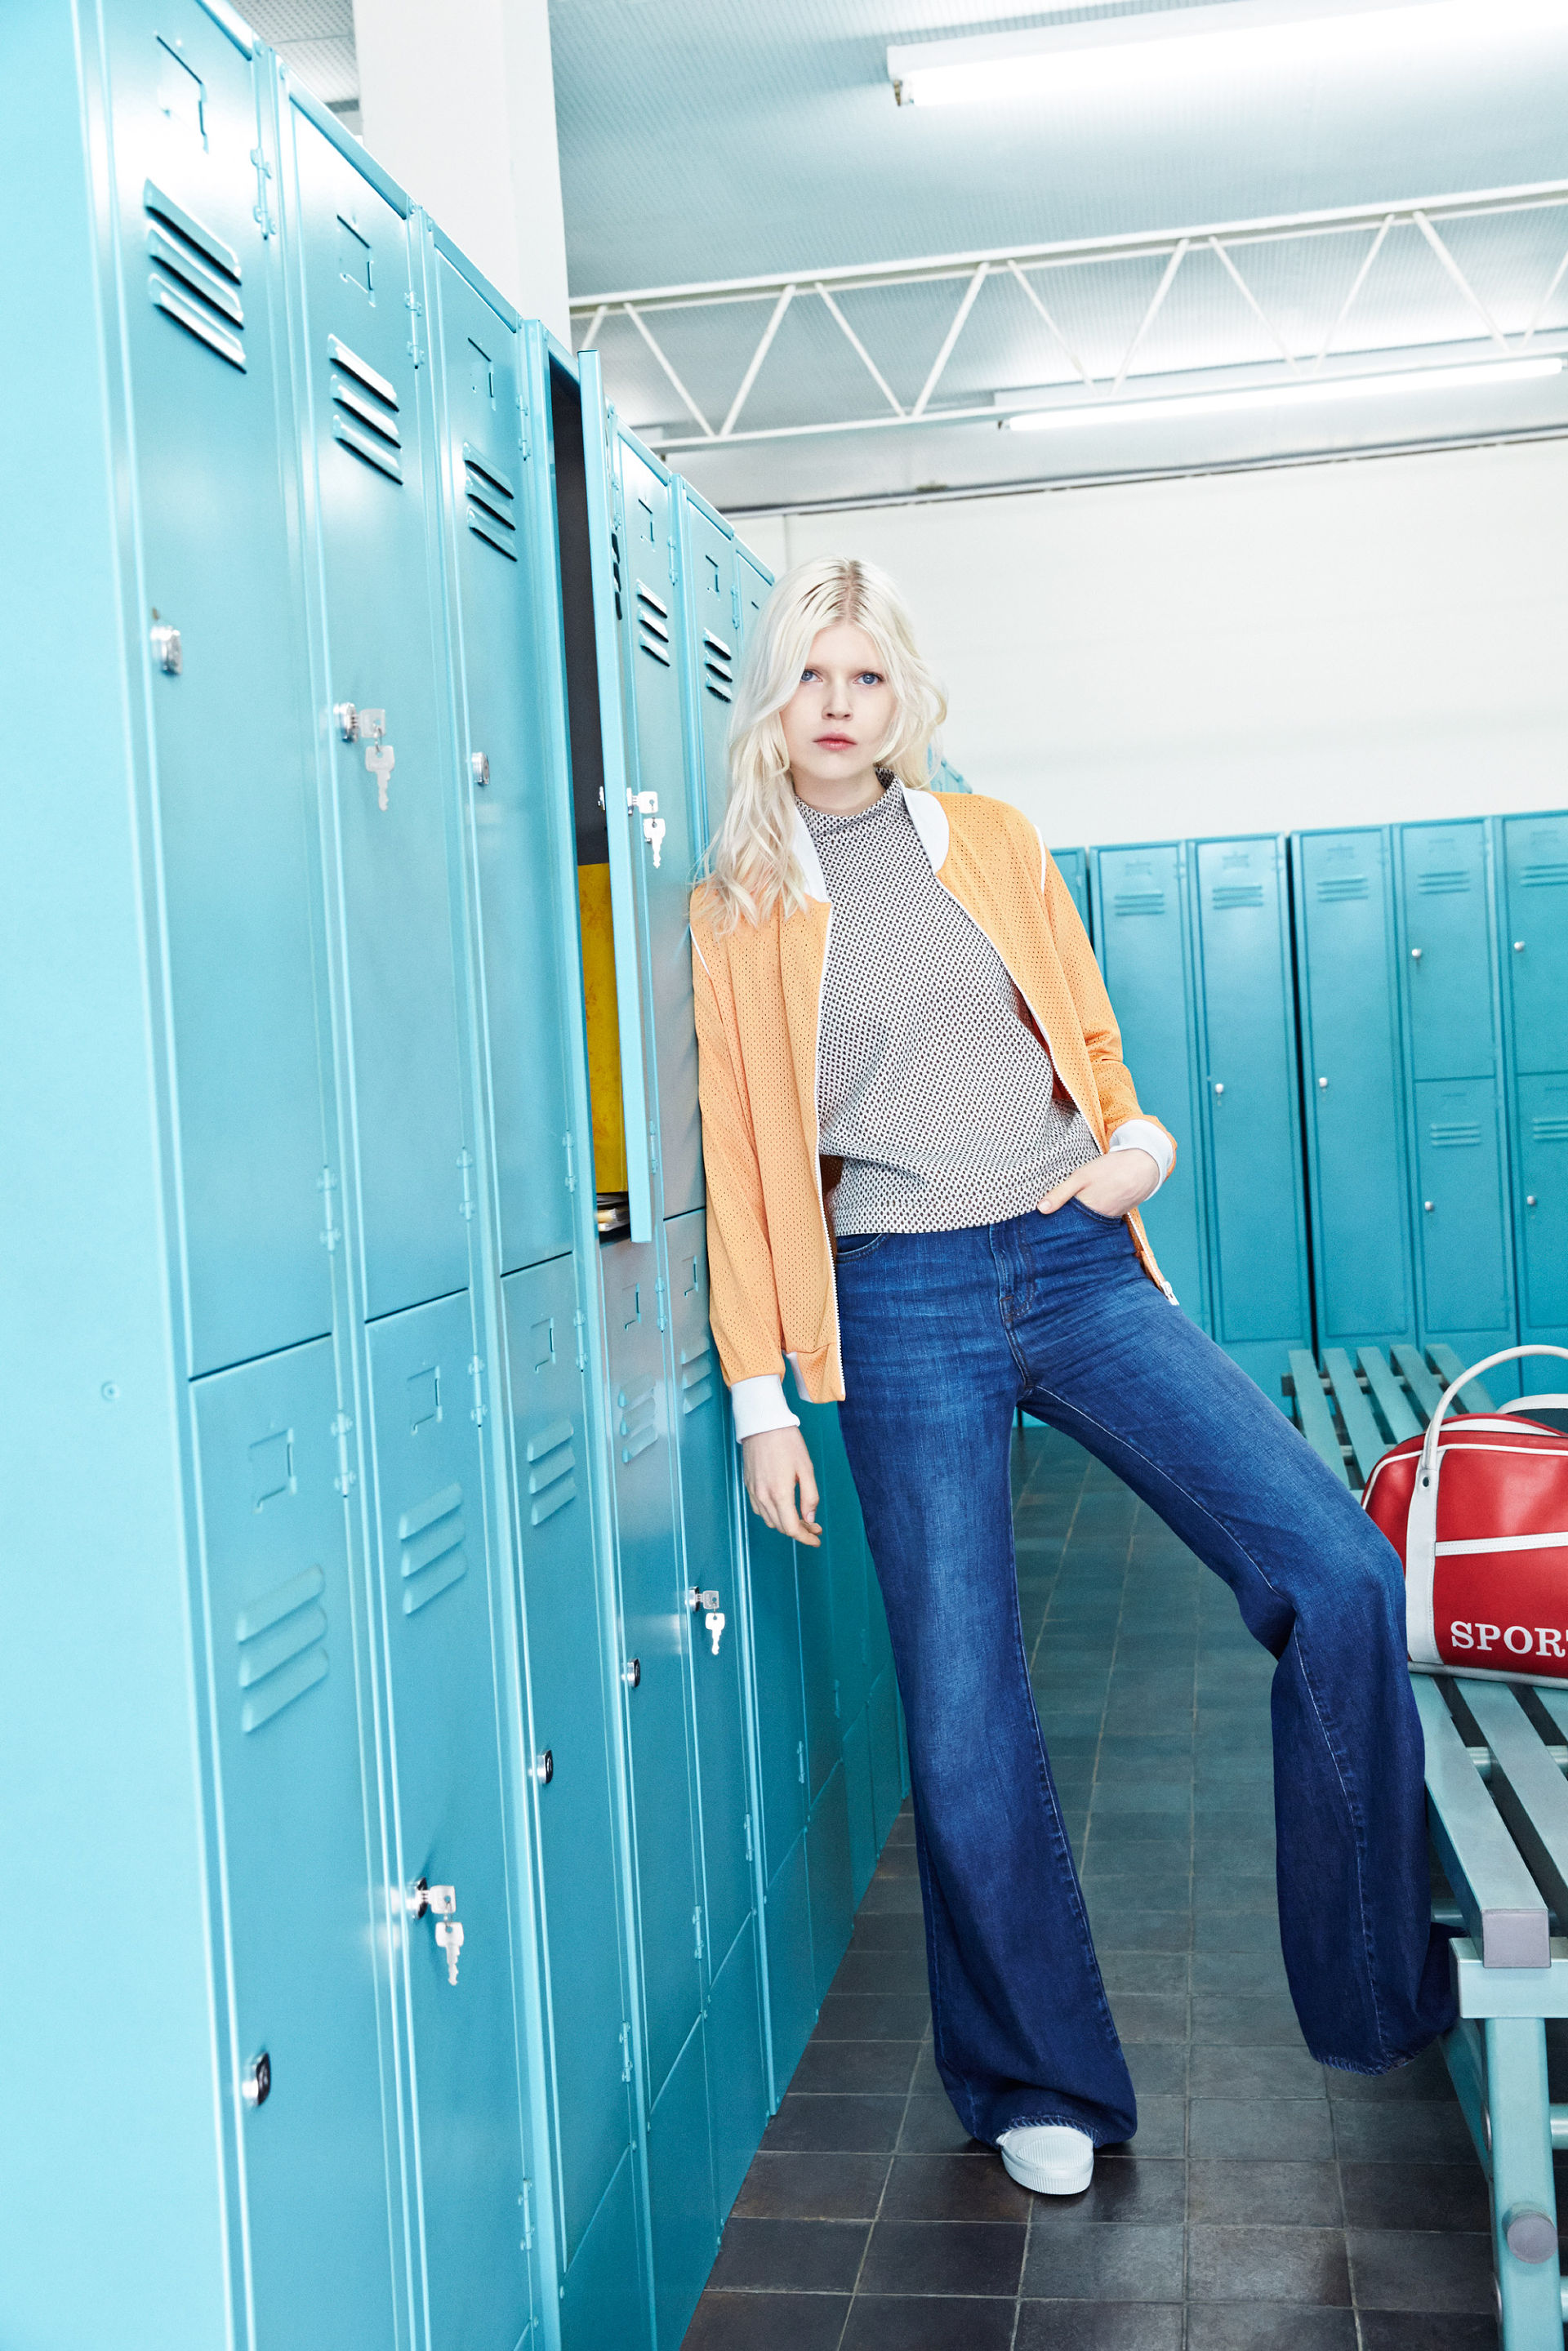 Ola Rudnicka for Zara TRF Fall / Winter 2014-2015 (Photography: courtesy of Zara)